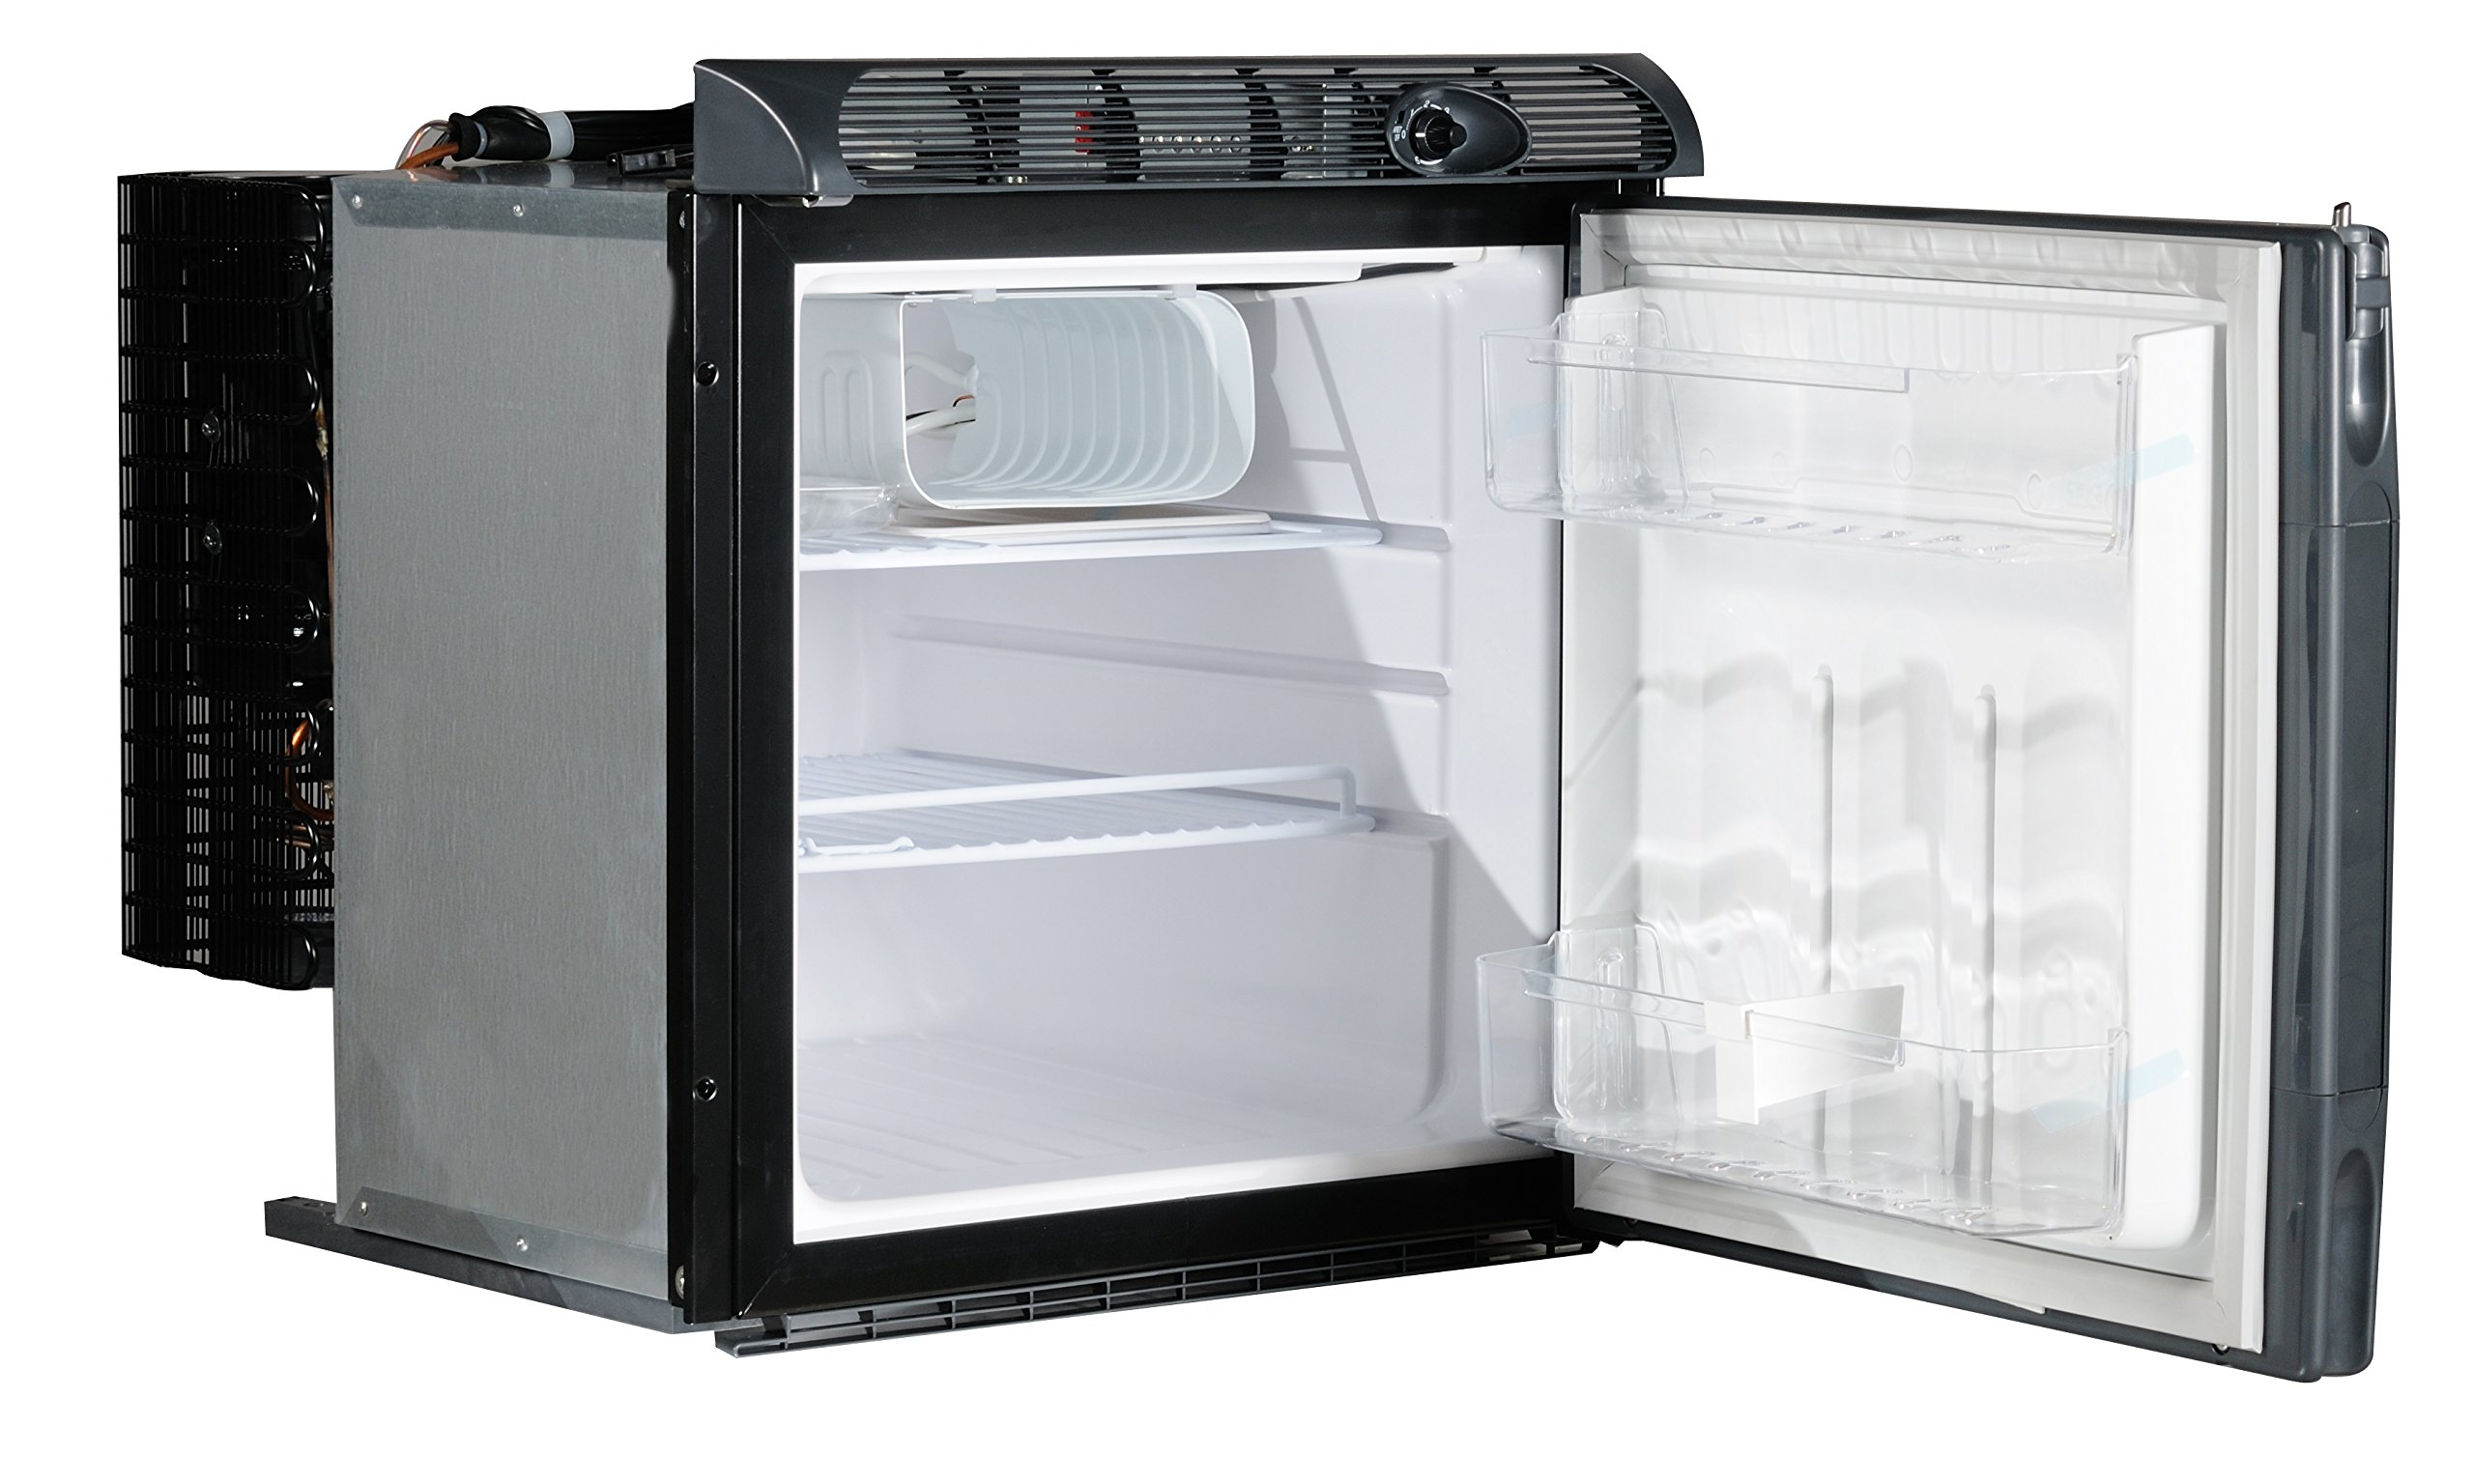 Engel SB70F 60 Qt. Built-in DC Only Front-Open Fridge Freezer 5  Solar Compatible - Low Amp Draws (even at start-up) Sized to Fit Industry Standard Cut-Outs in Most RV's Withstands Extreme Conditions - Incline Operation up to 30º